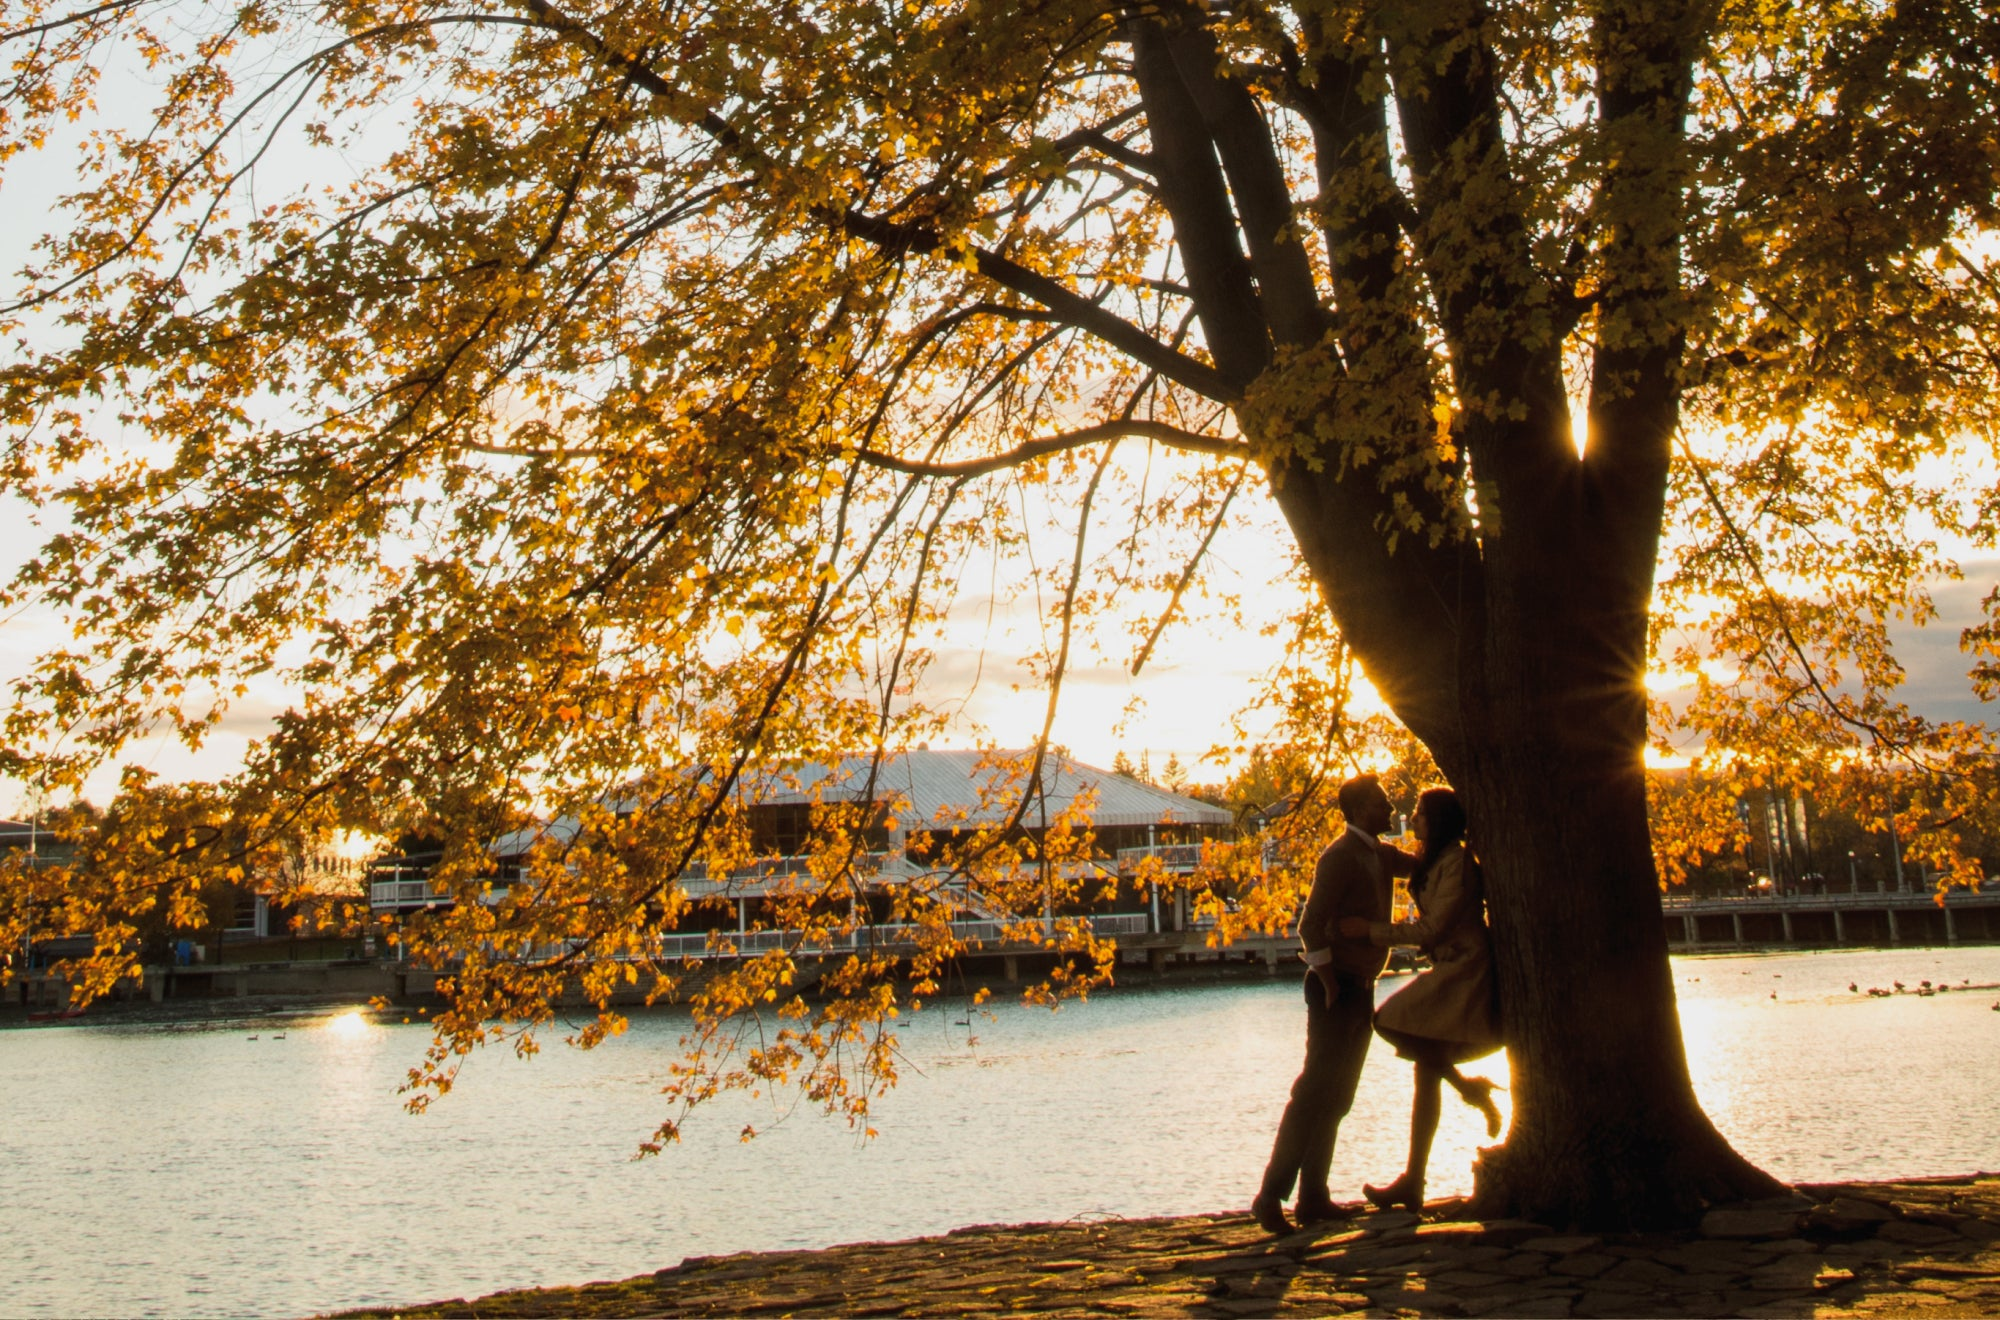 A couple kisses under a tree, showing their love while also benefiting the environment | Talsam